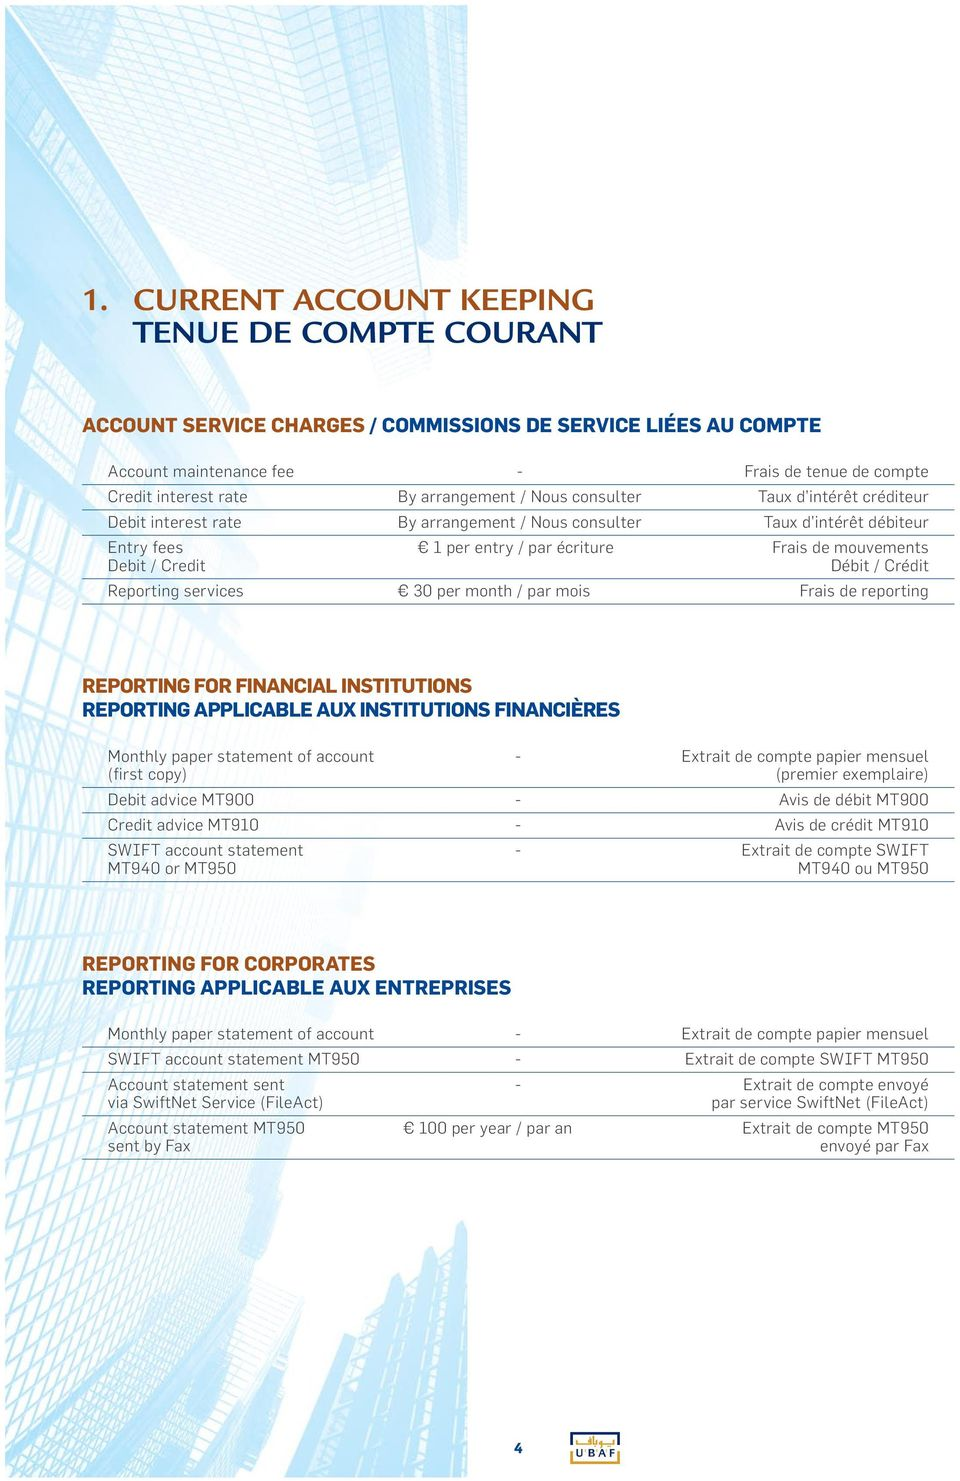 Credit Débit / Crédit Reporting services 30 per month / par mois Frais de reporting REPORTING FOR FINANCIAL INSTITUTIONS REPORTING APPLICABLE AUX INSTITUTIONS FINANCIÈRES Monthly paper statement of